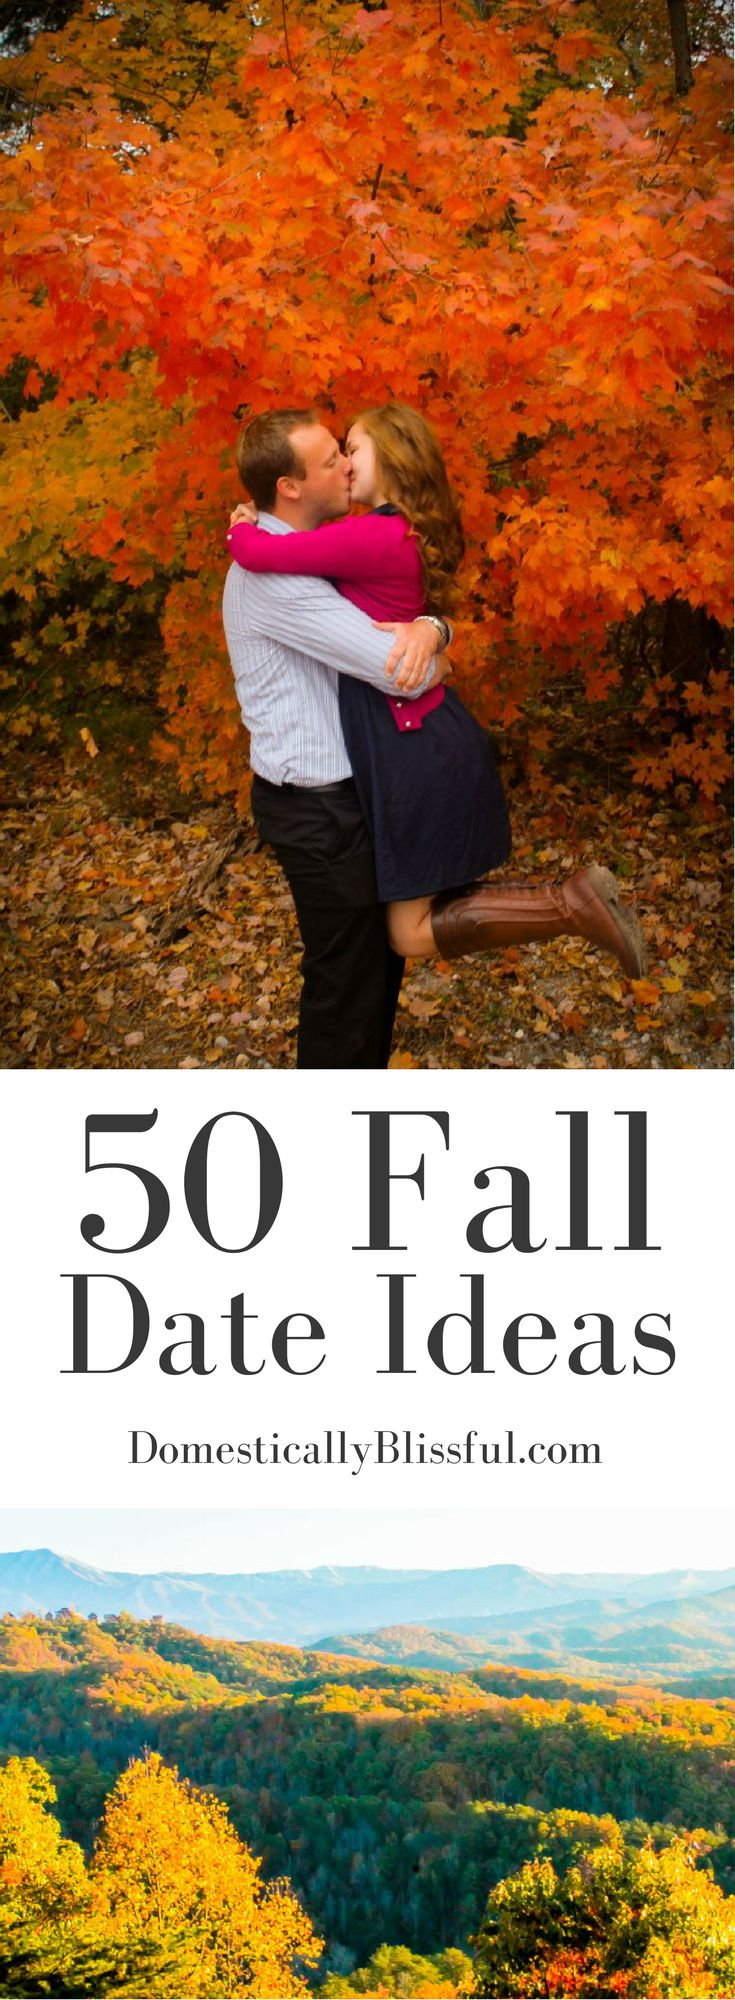 A list of fun & romantic fall date ideas that will last you all season!